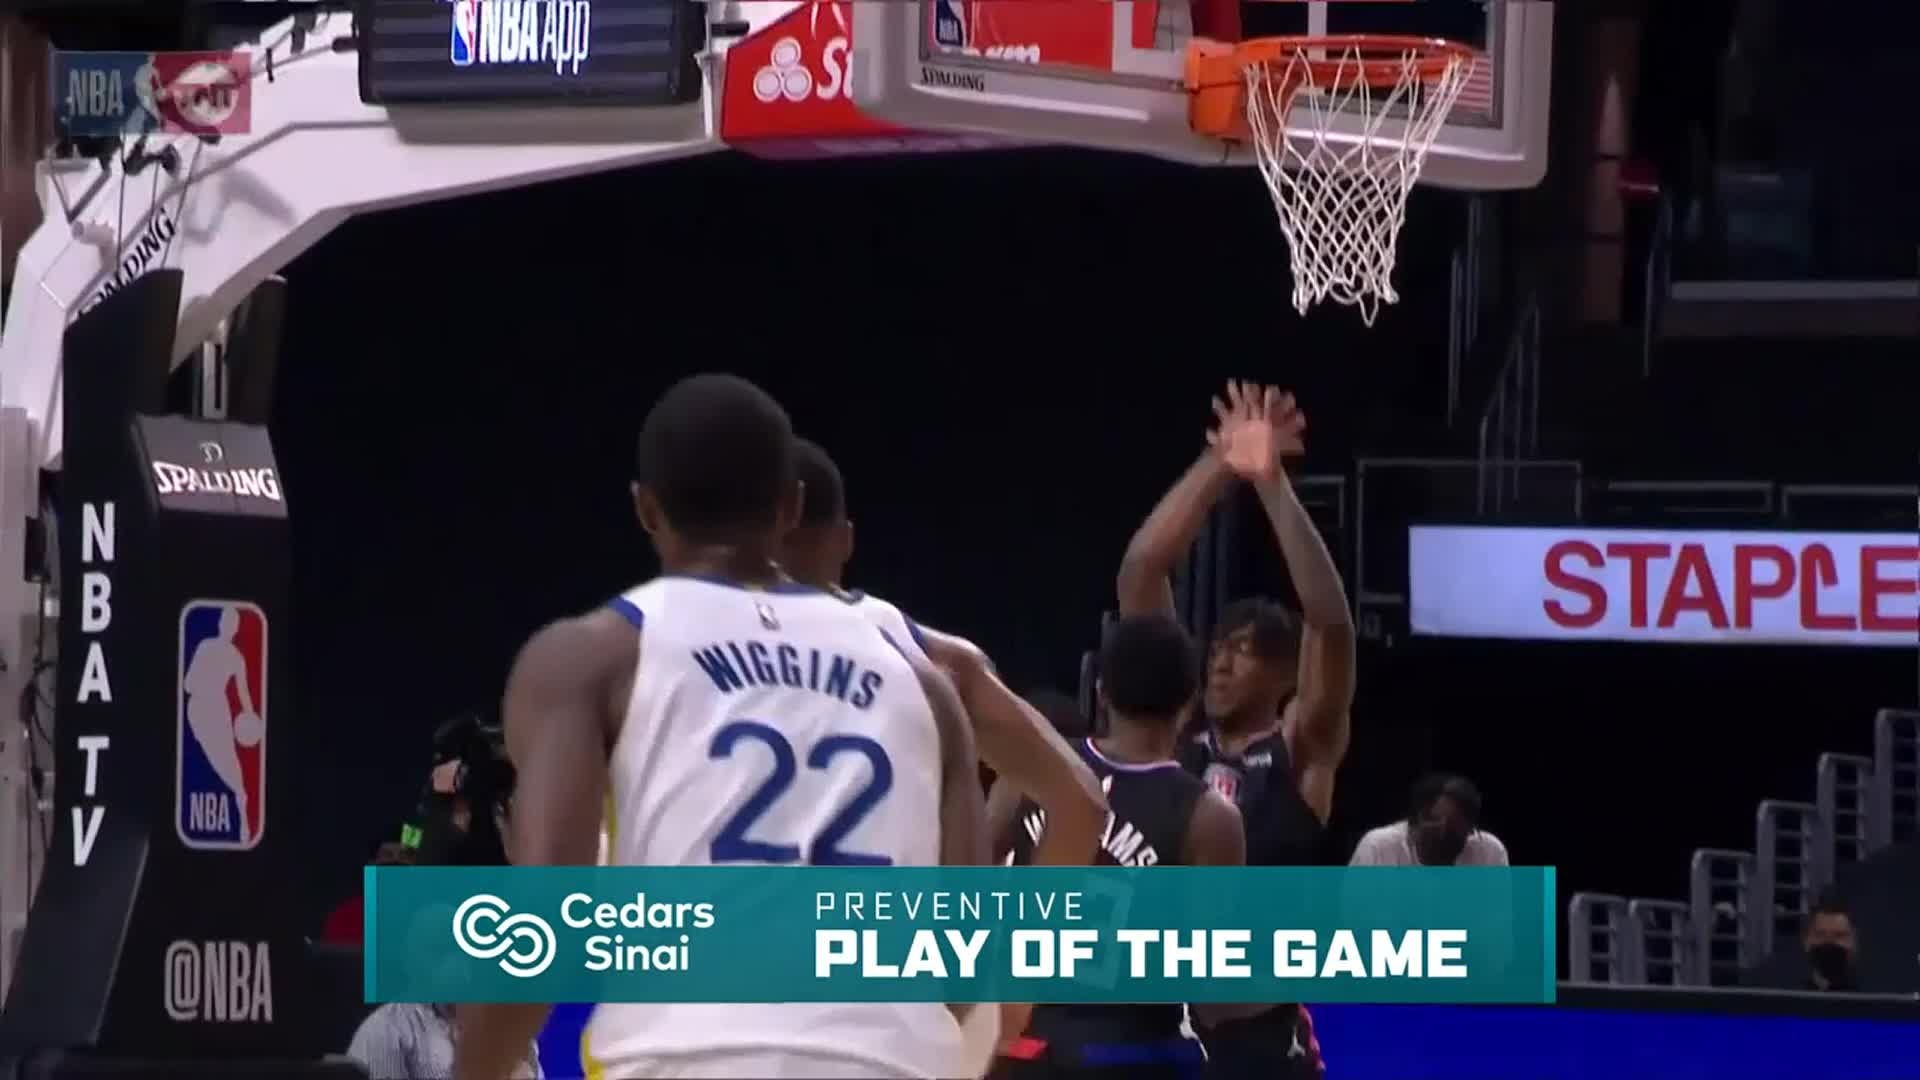 Cedars-Sinai Preventive Play of the Game | Clippers vs Warriors (3.11.21)